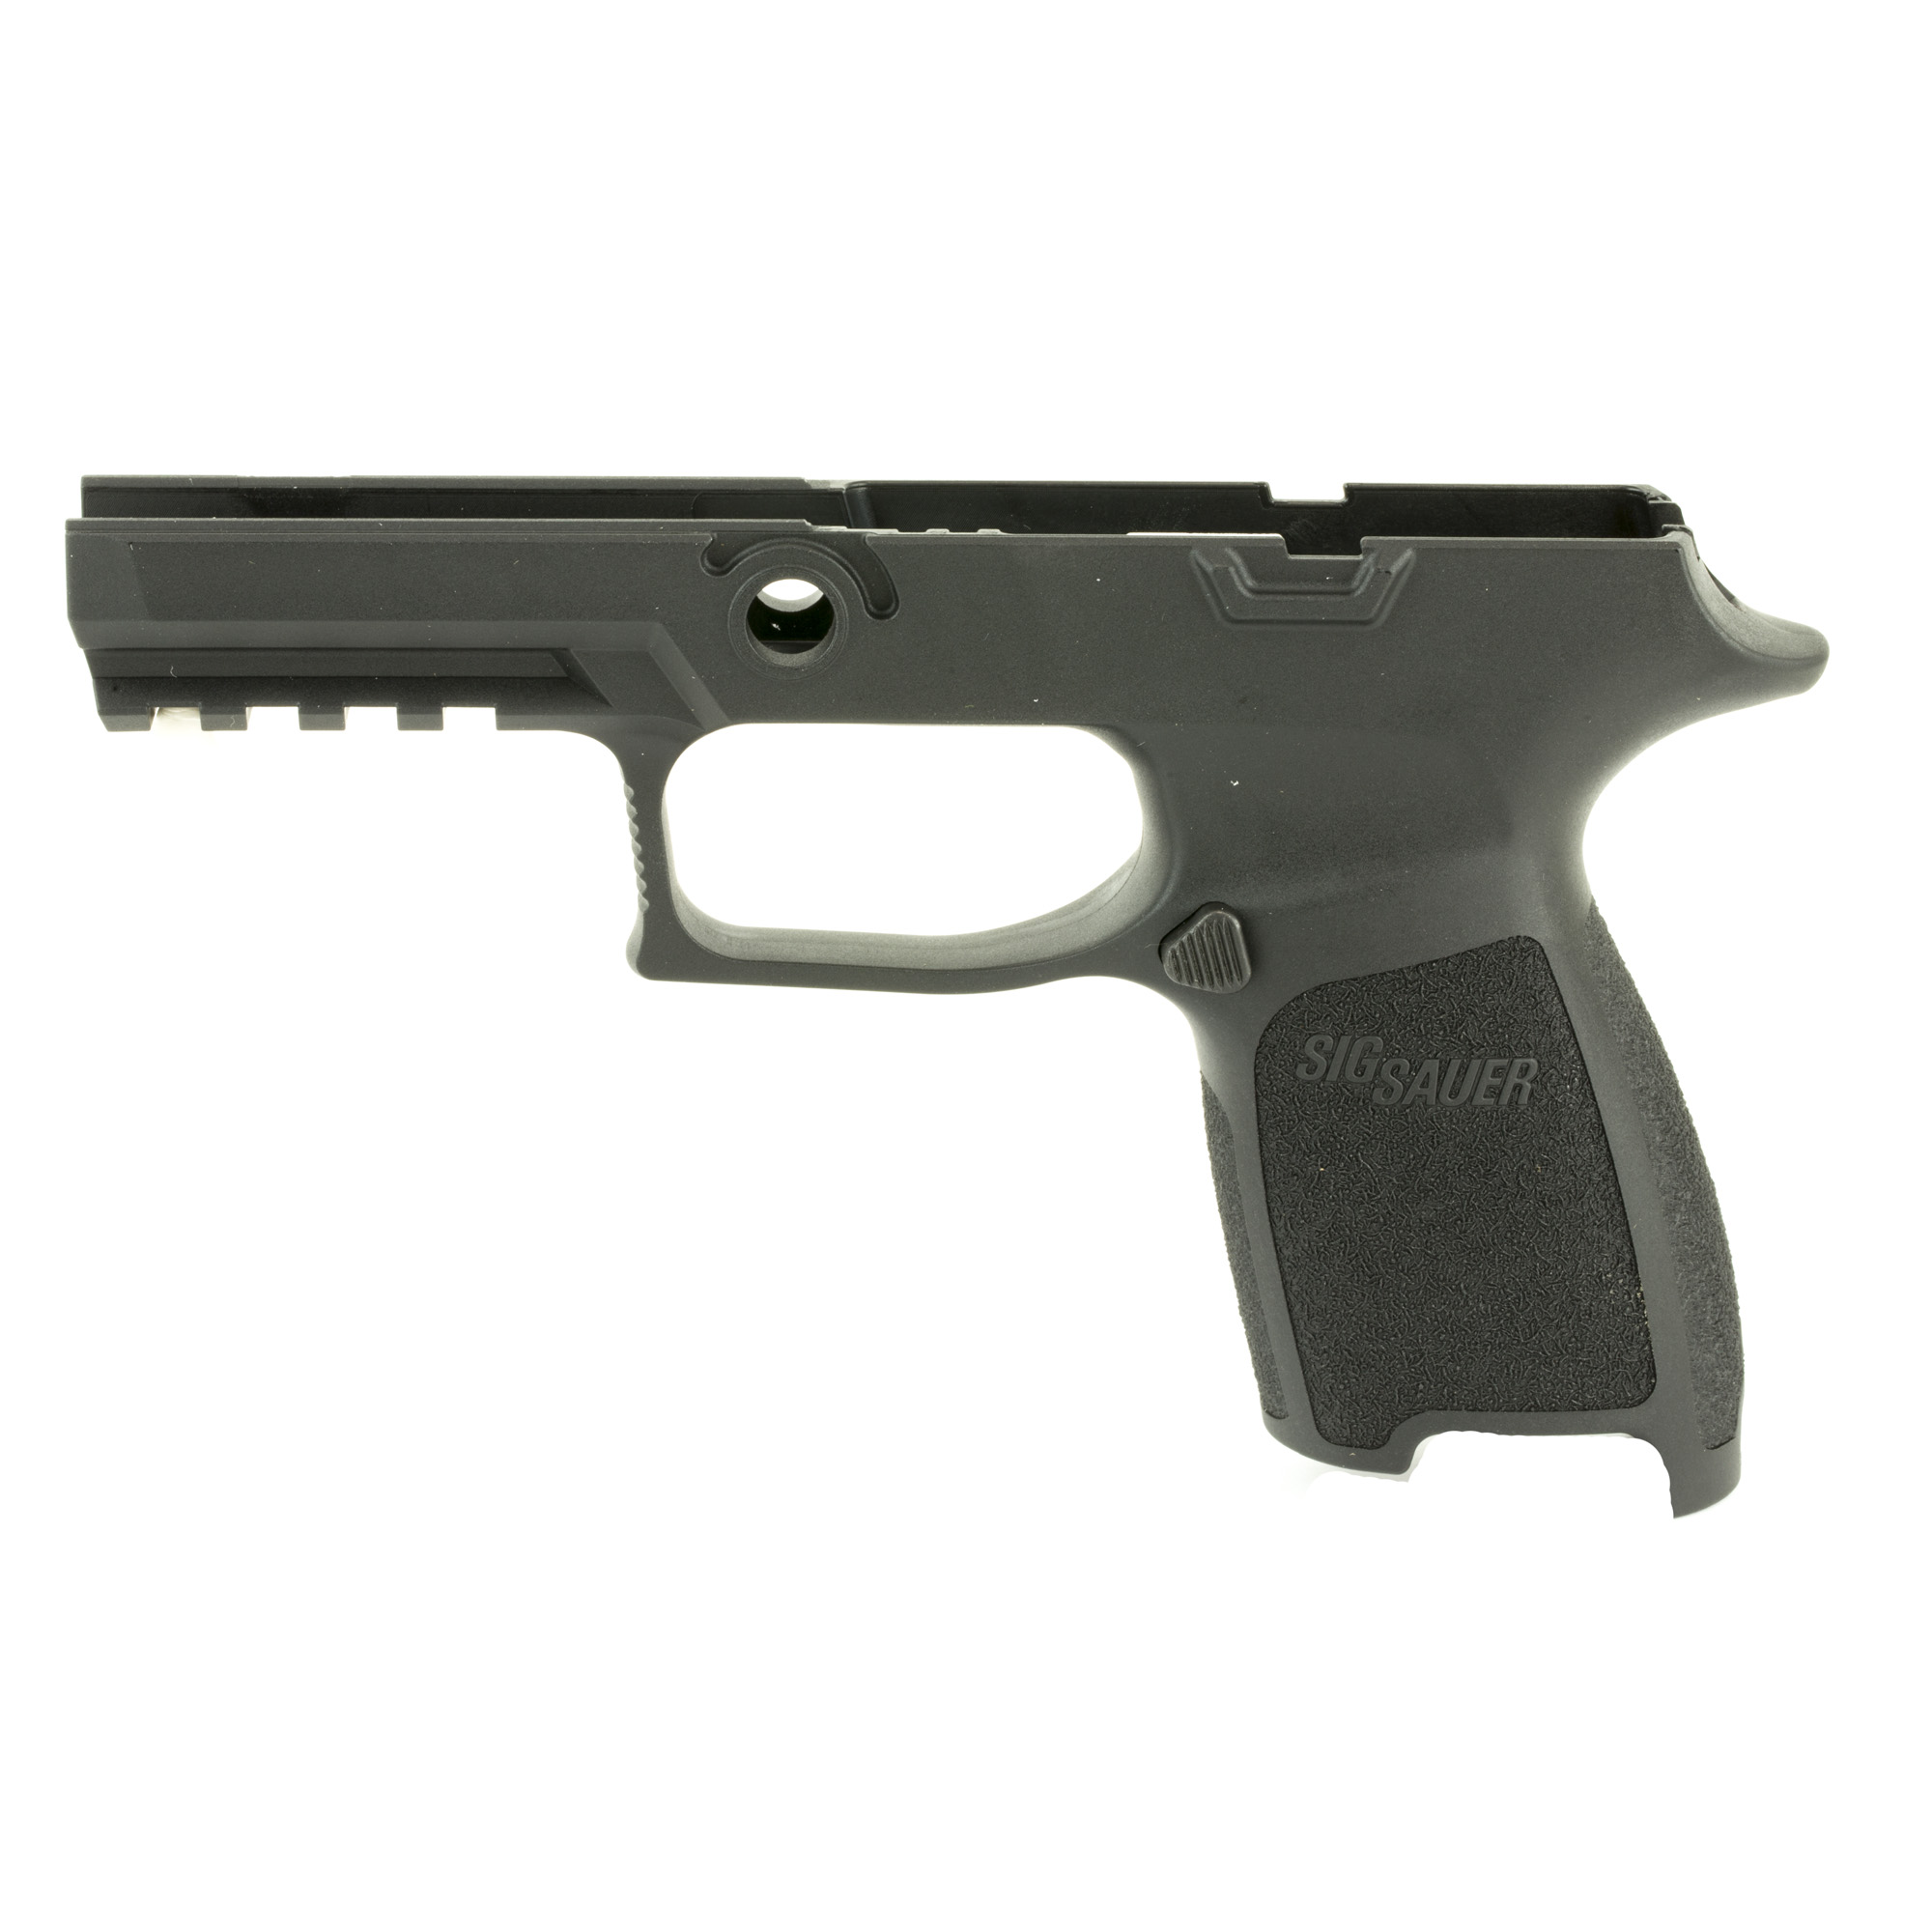 "Install your P320/P250 firing control unit into this Grip Module Assembly to convert to a P320 or P250 compact chambered in 9mm"" .357 SIG"" .40AUTO. Requires the 9mm"" .357 SIG and .40AUTO slide and barrel. Available in three sizes (small"" medium"" large) and three colors (Black"" ODG"" FDE)."